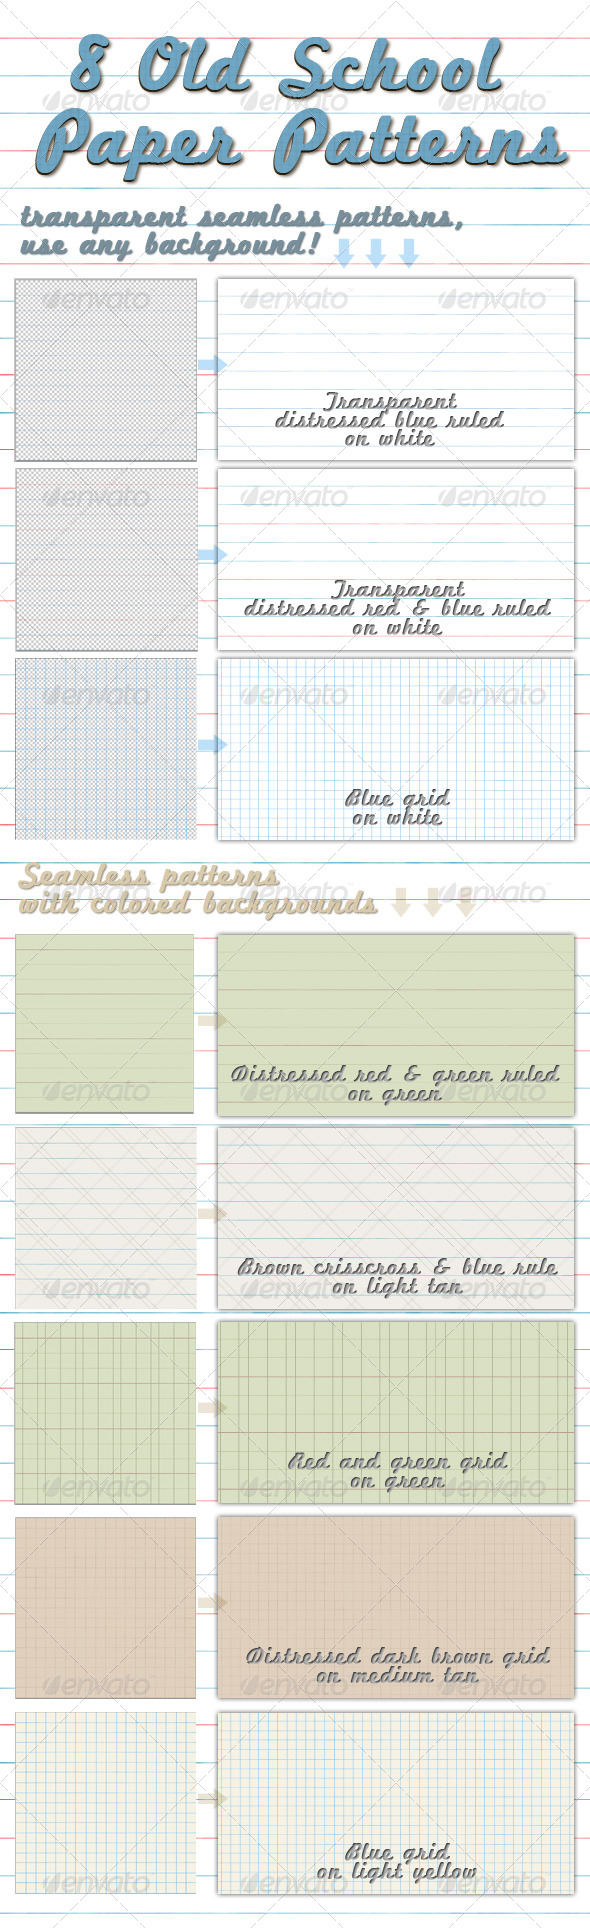 GraphicRiver Old School Paper Patterns 237615